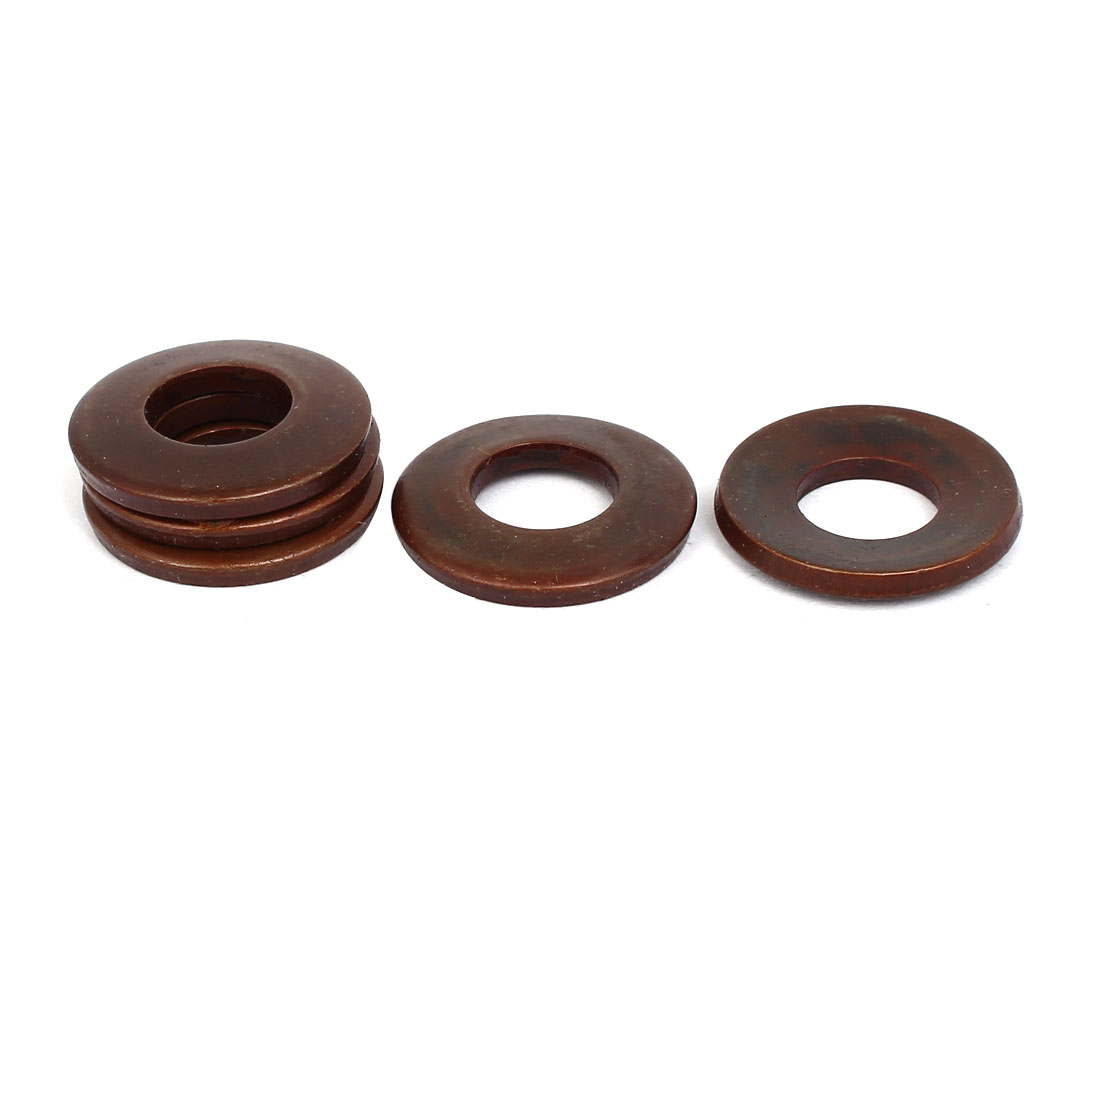 23mm Outer Dia 10.5mm Inner Dia 2.5mm Thickness Belleville Spring Washer 5pcs